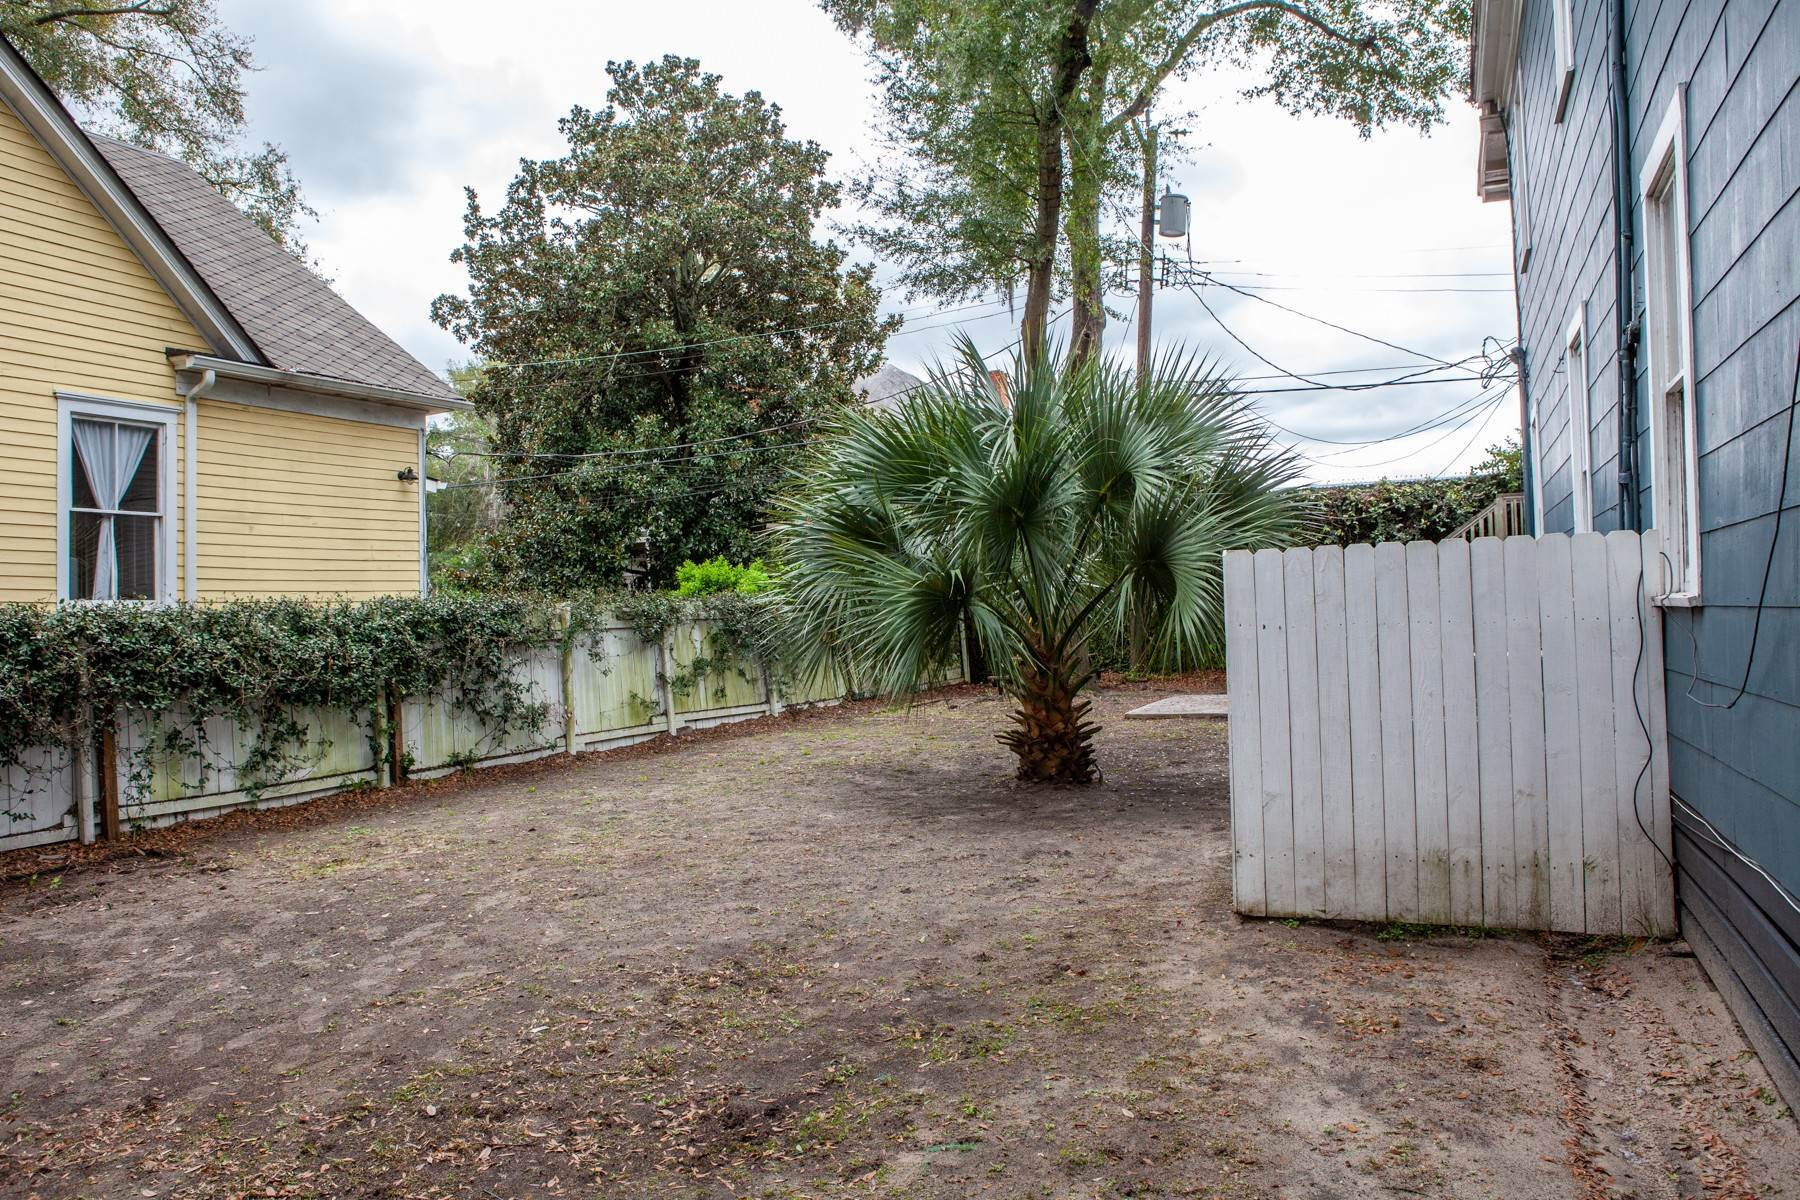 Land for Sale at Buildable Lot in Starland District 211 W 41st Street Savannah, Georgia 31401 United States